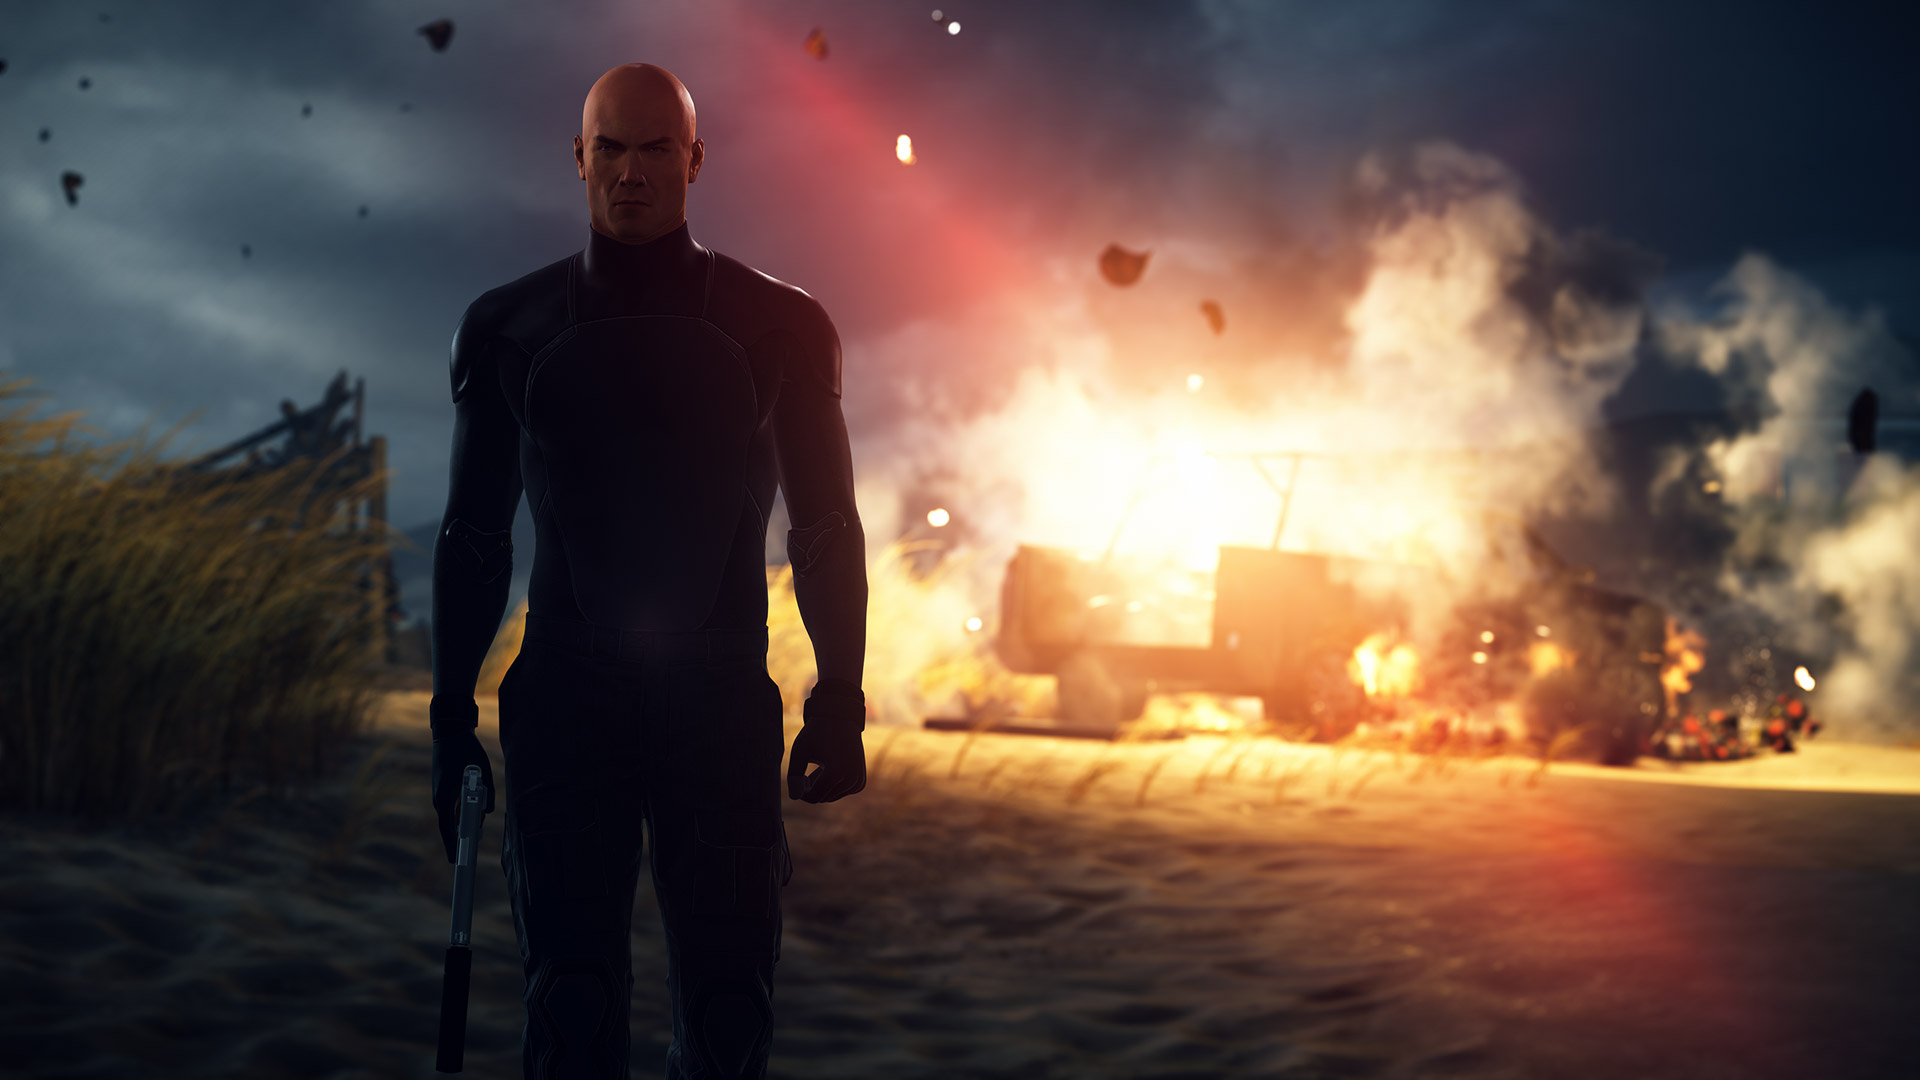 Hitman 2 Wallpaper in 1920x1080